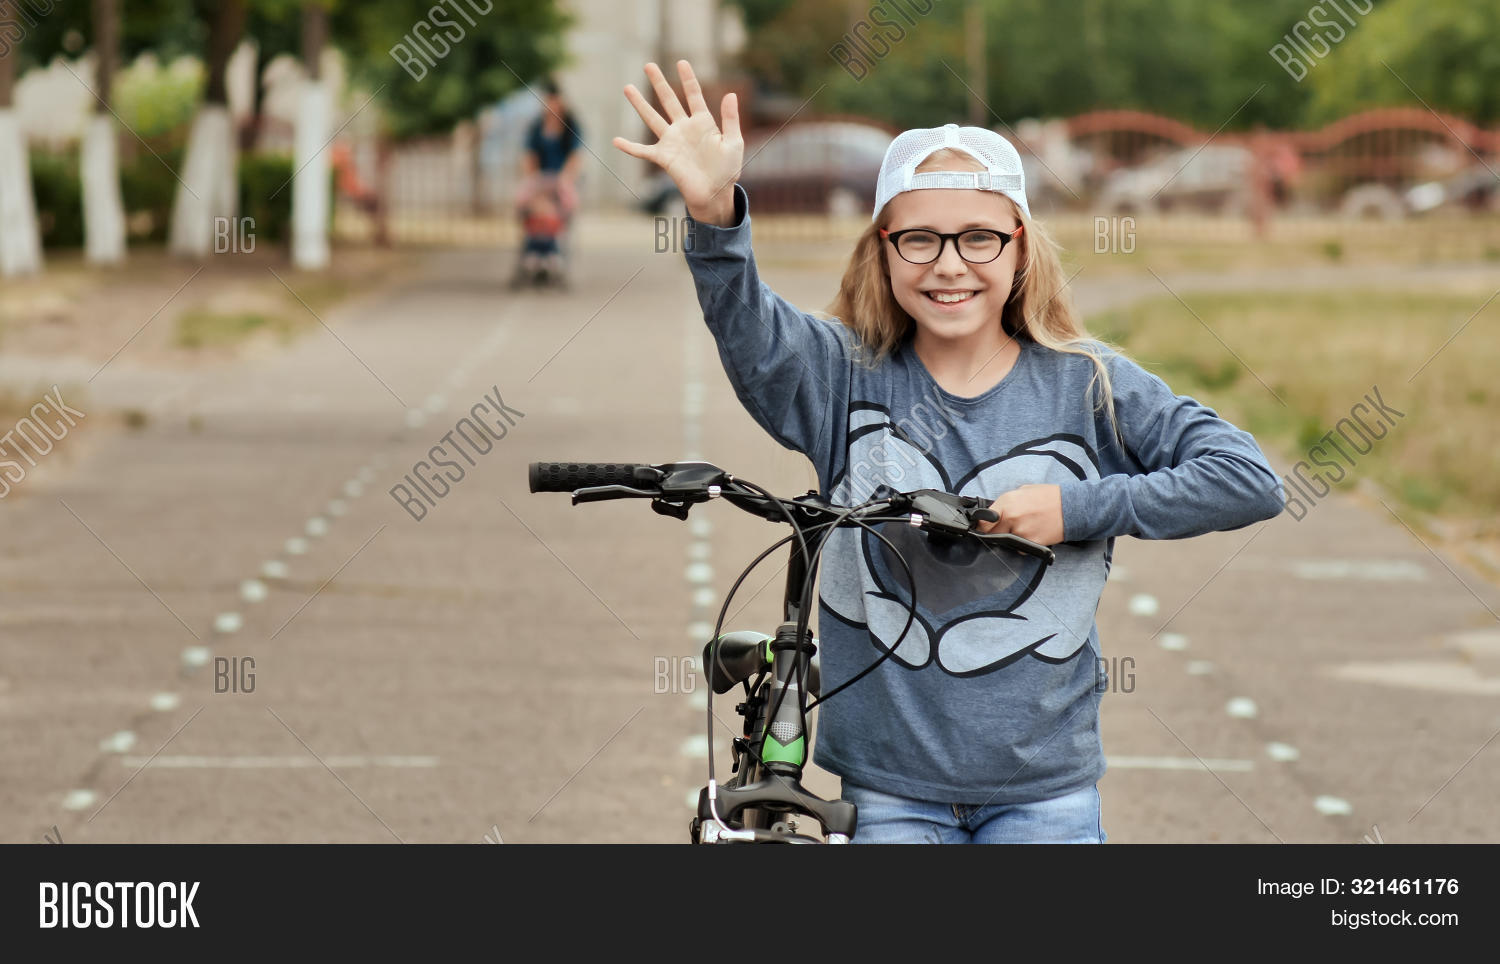 An eleven-year-old girl in a good mood rides a bicycle and after a stop shows a thumbs-up.